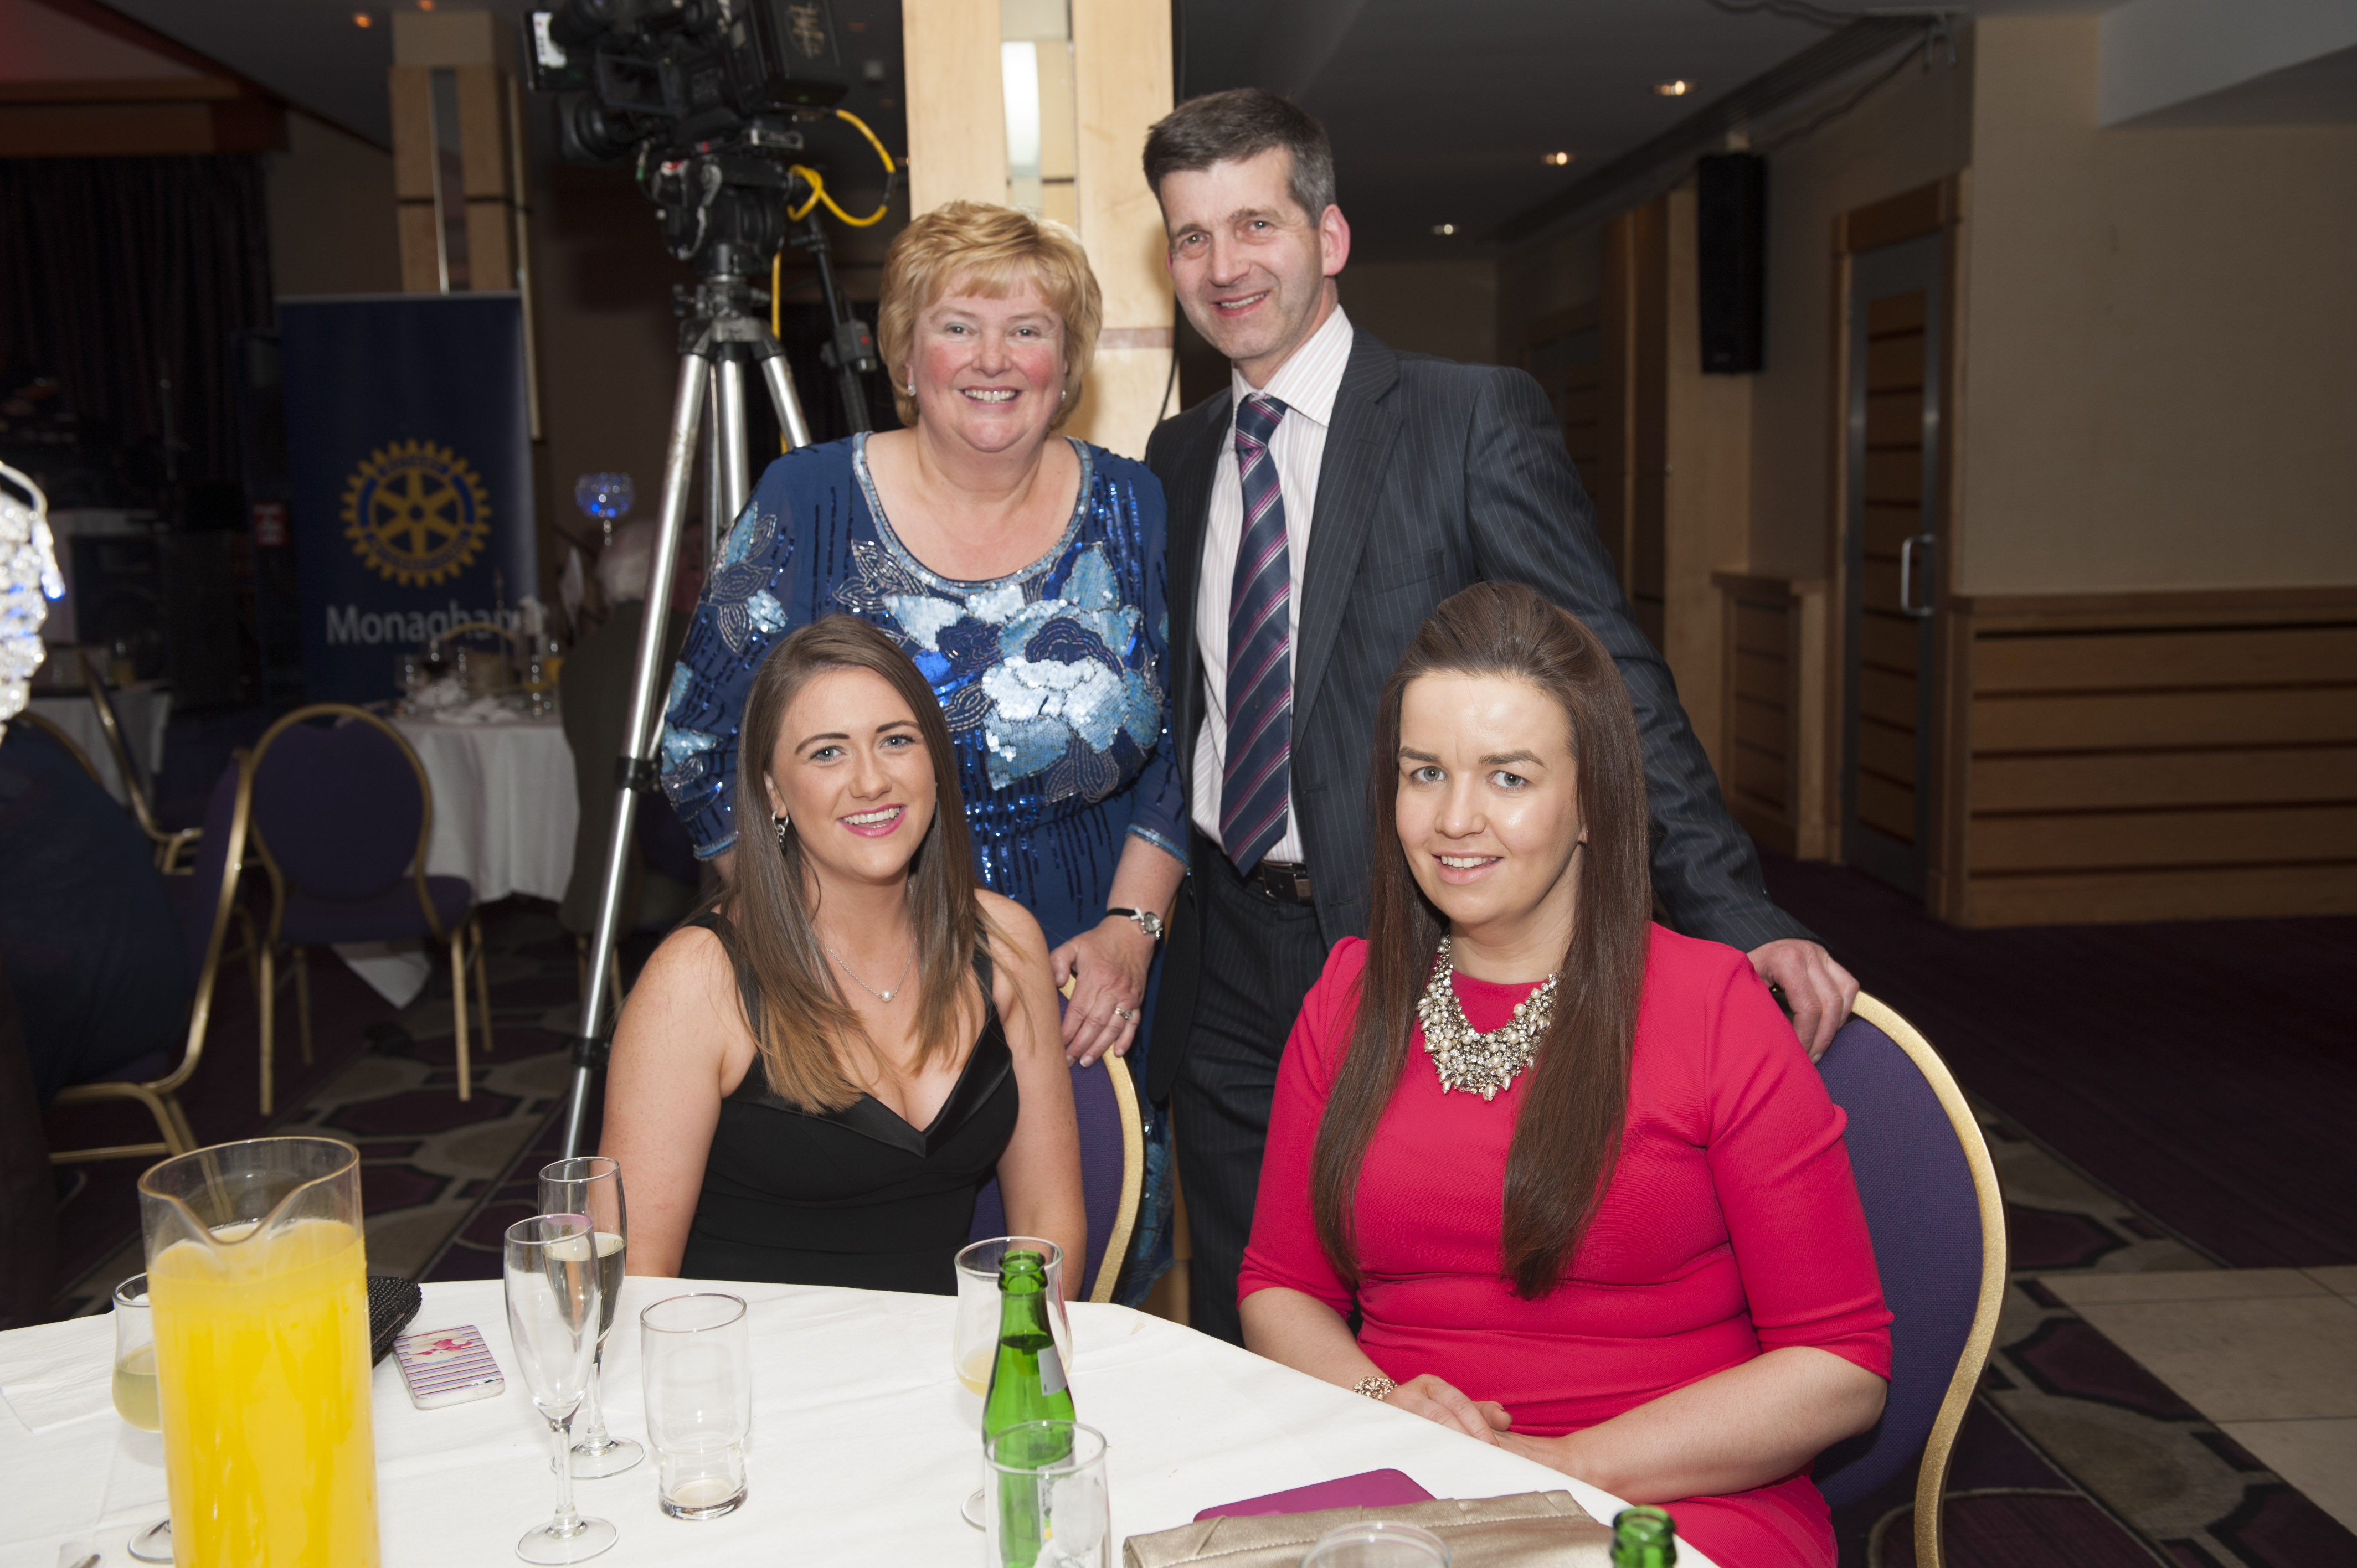 Pictured at the Monaghan Rotary Club's Pat The President's Country Music & Western Night were front Adrienne Sherry and Joanne Murnaghan with Diane and Ron Kendrick, behind. ©Rory Geary/The Northern Standard